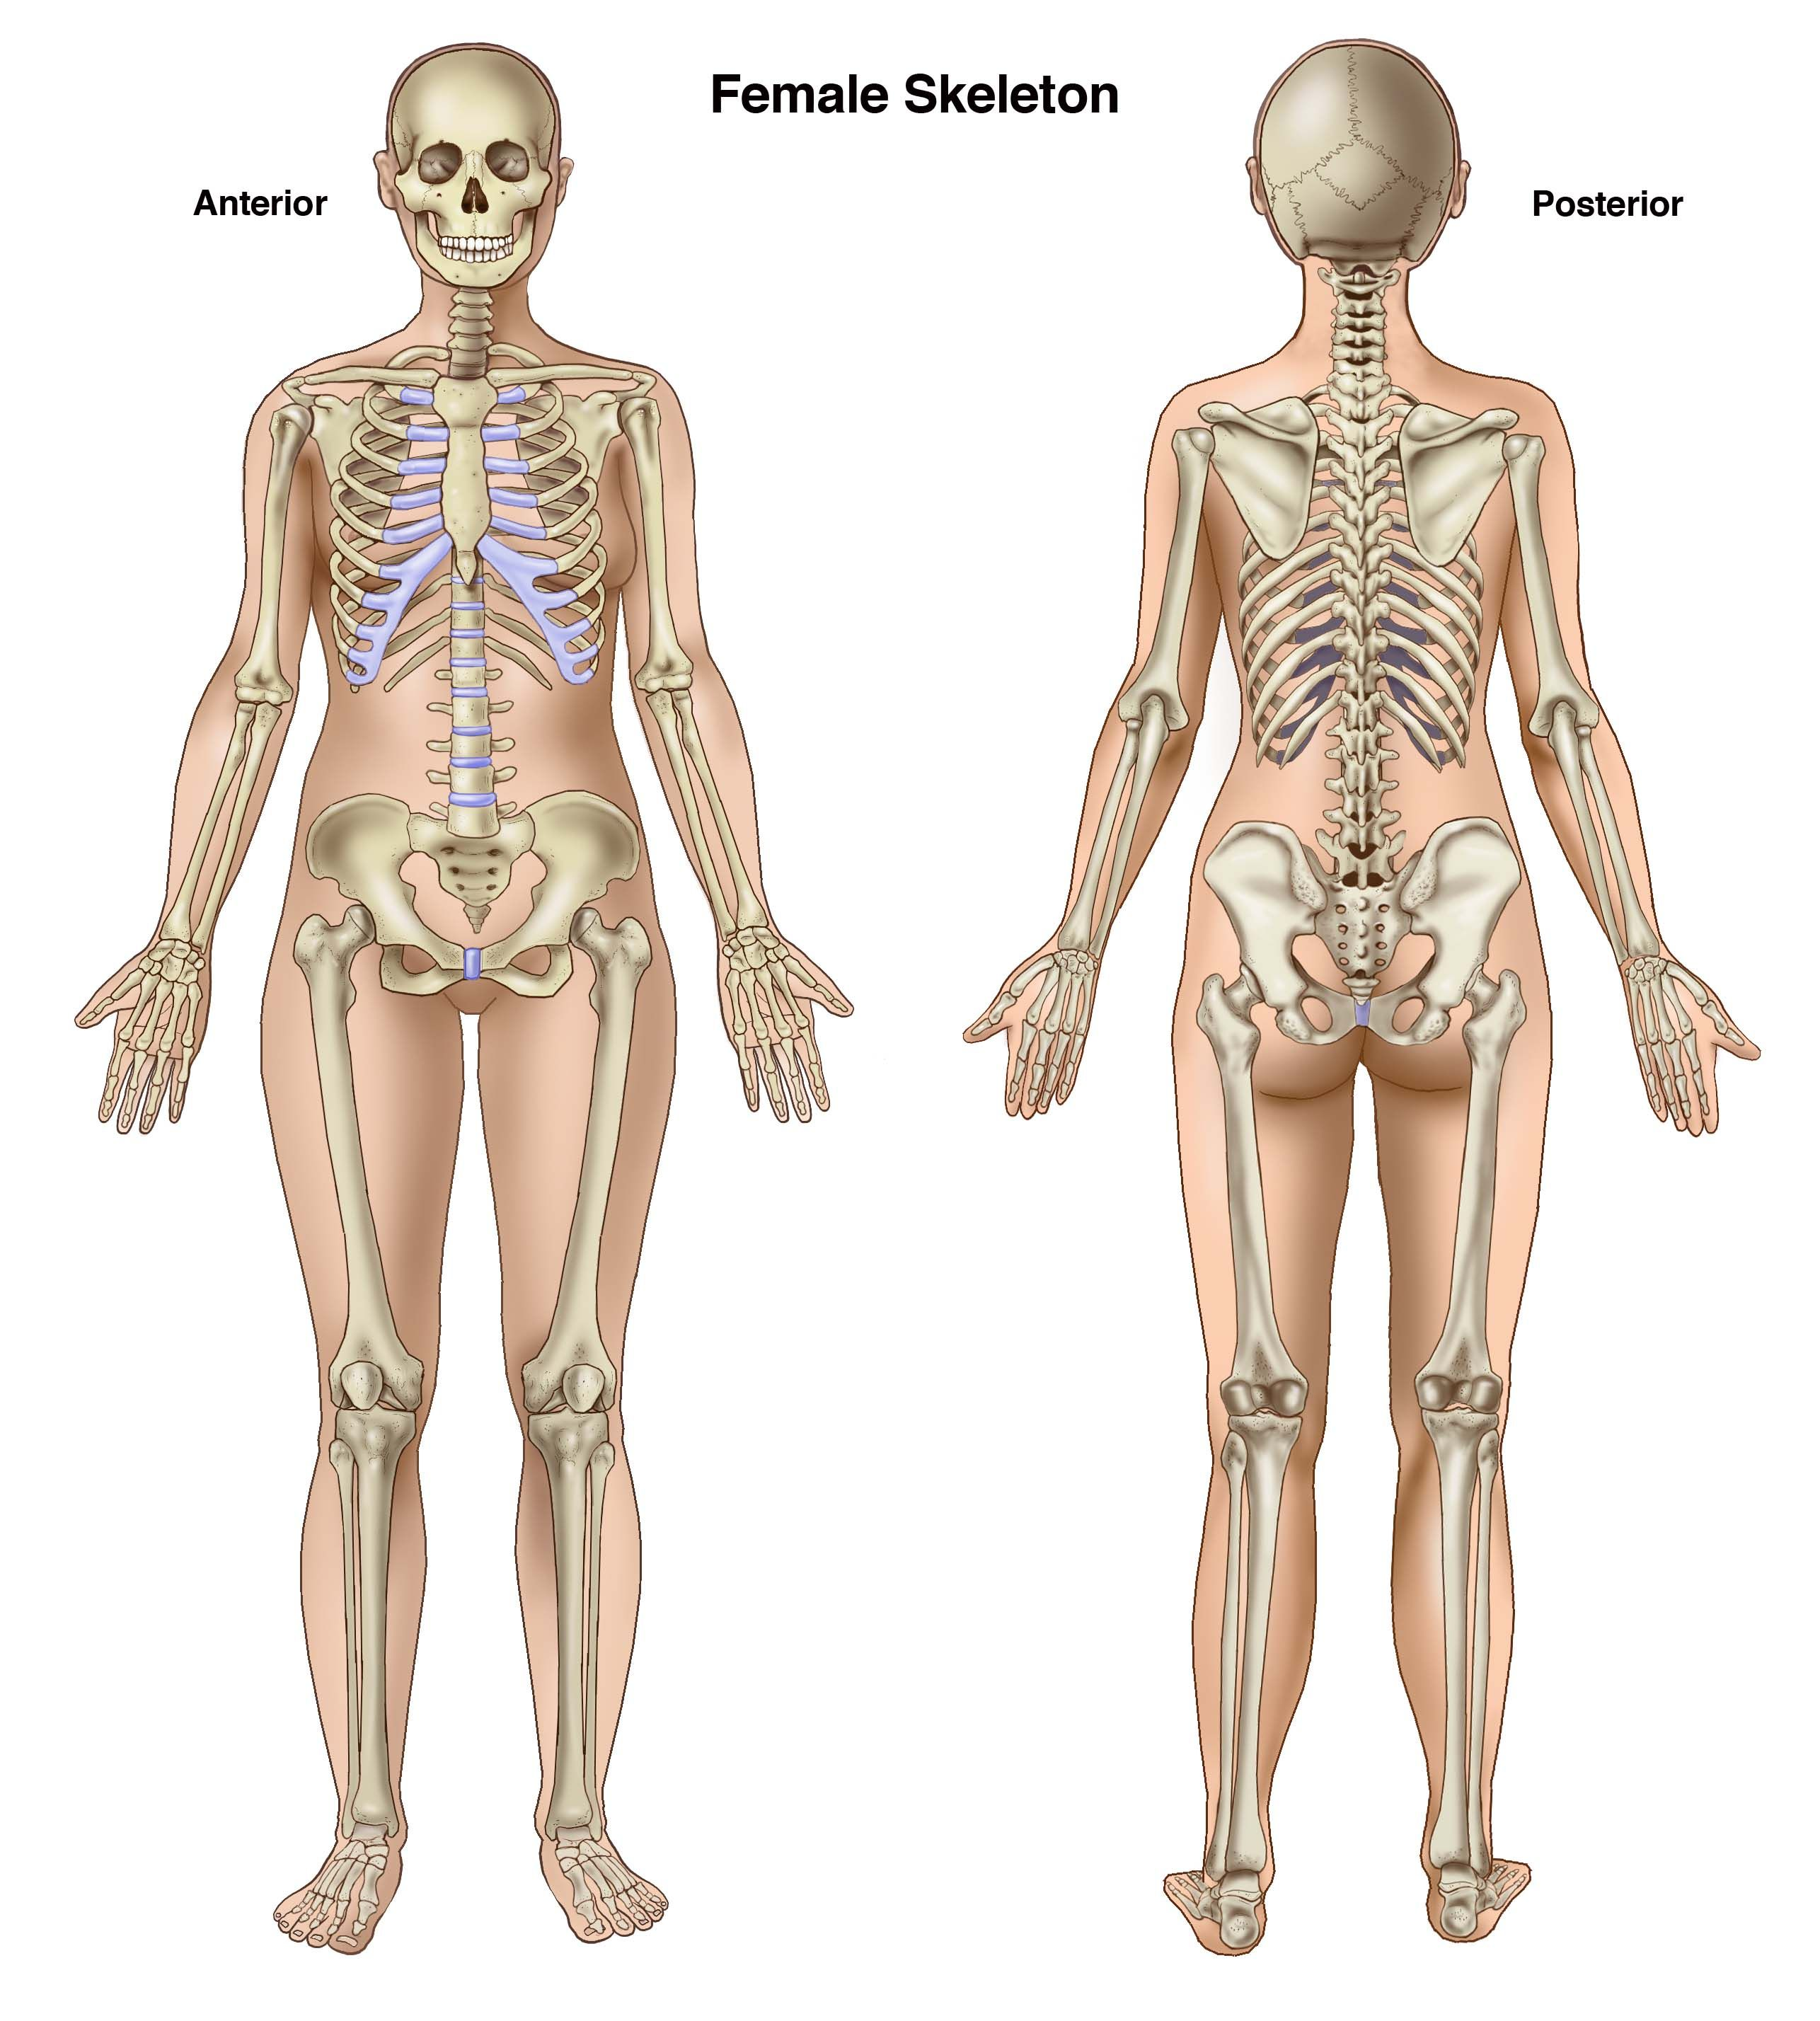 Anterior View Female Skeletal Google Search Design Class